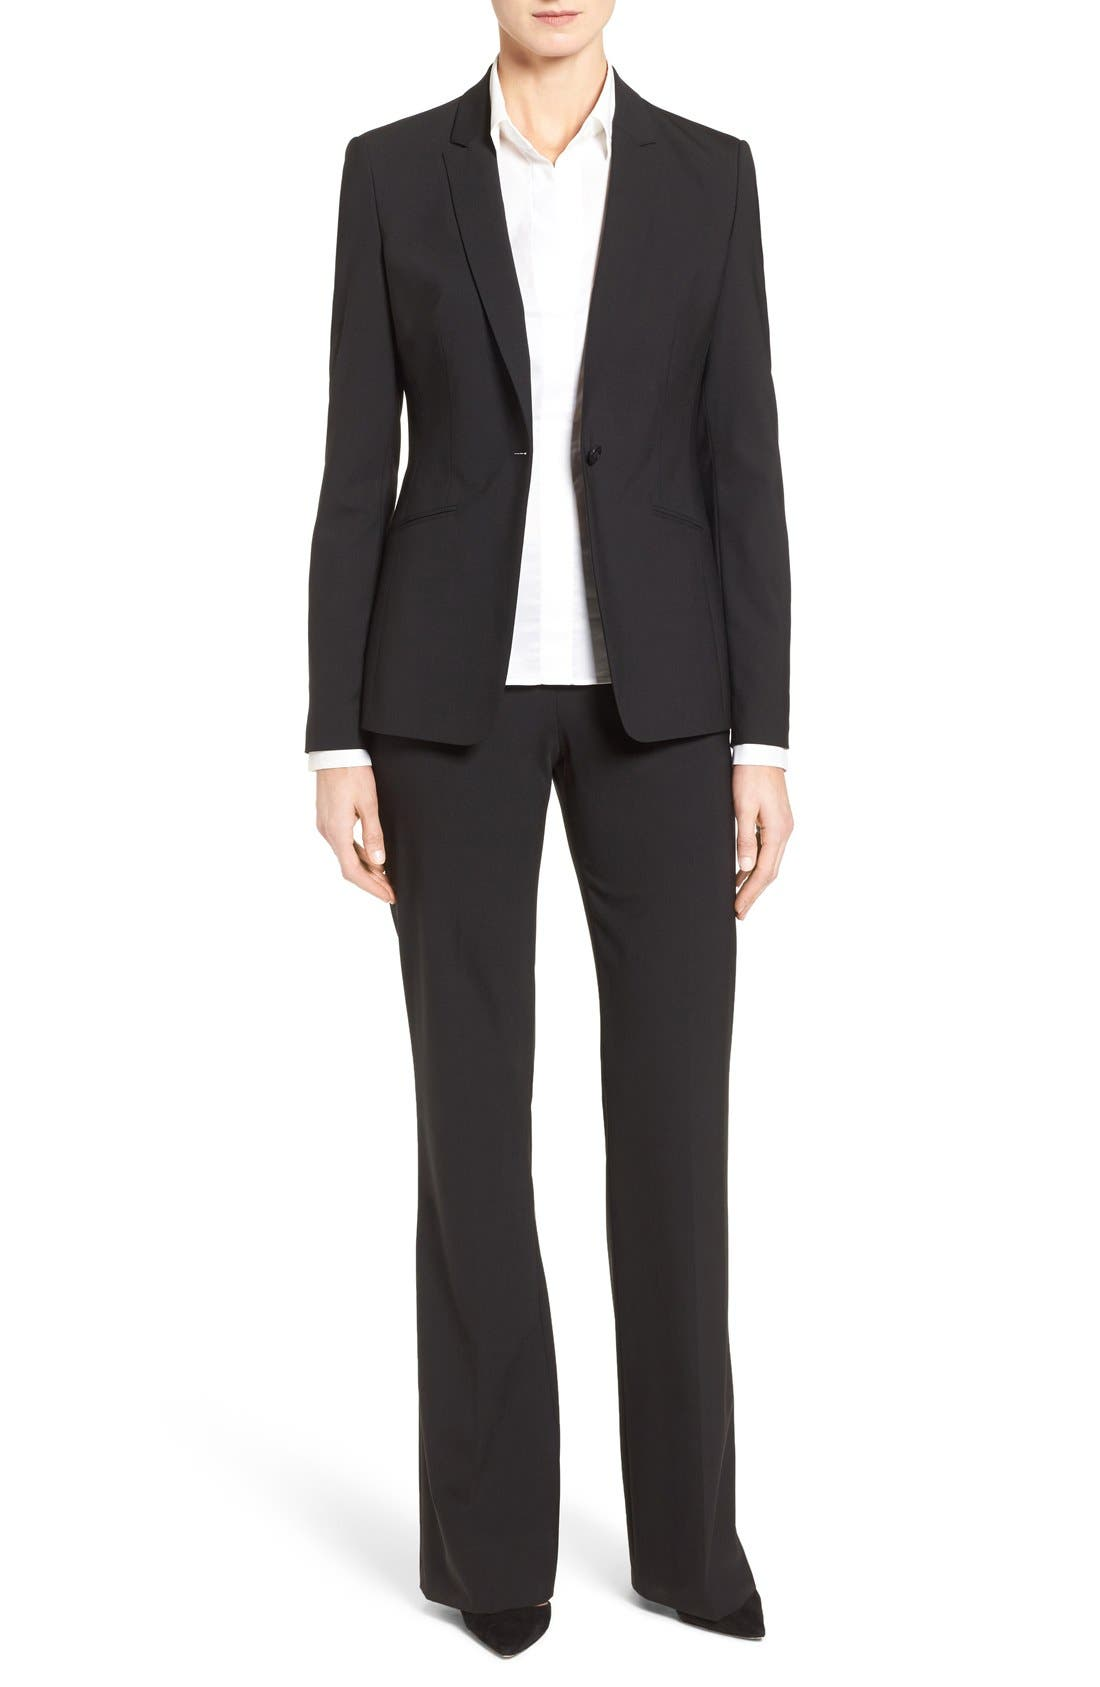 BOSS Suit Jacket, Bootcut Trousers & Shirt